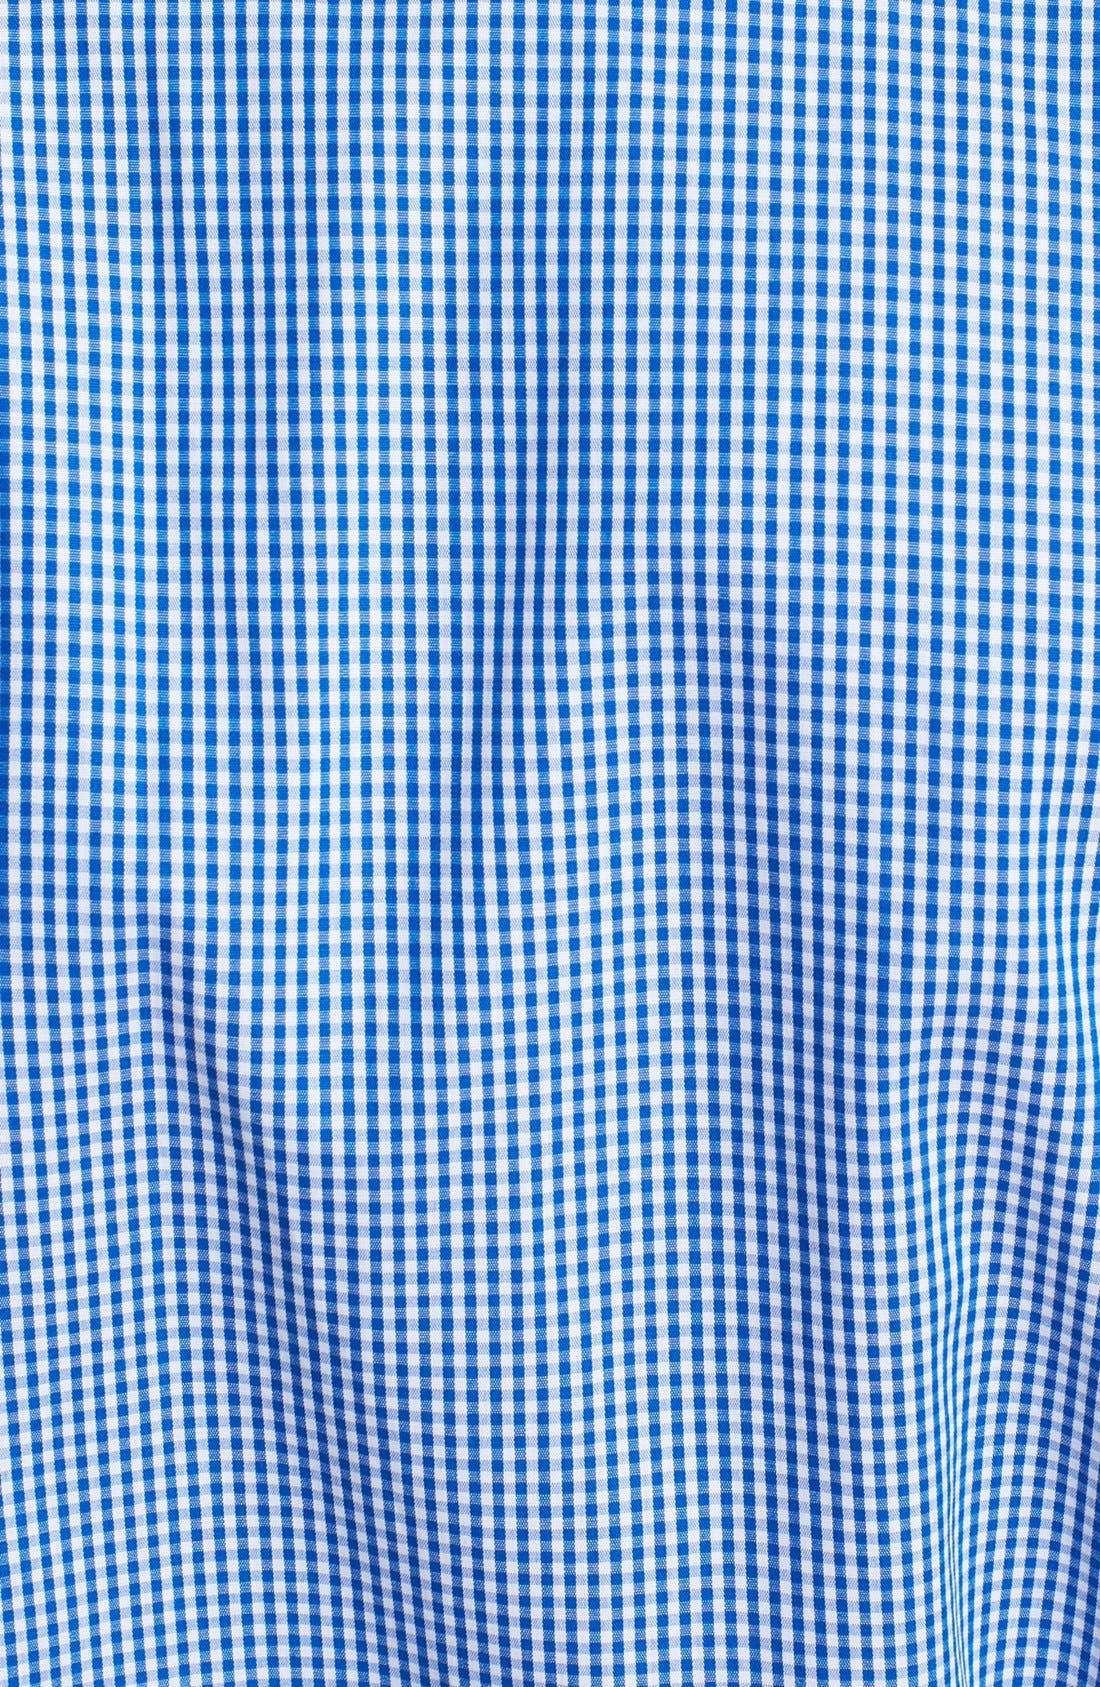 Alternate Image 3  - Paul Smith London Check Cotton Shirt